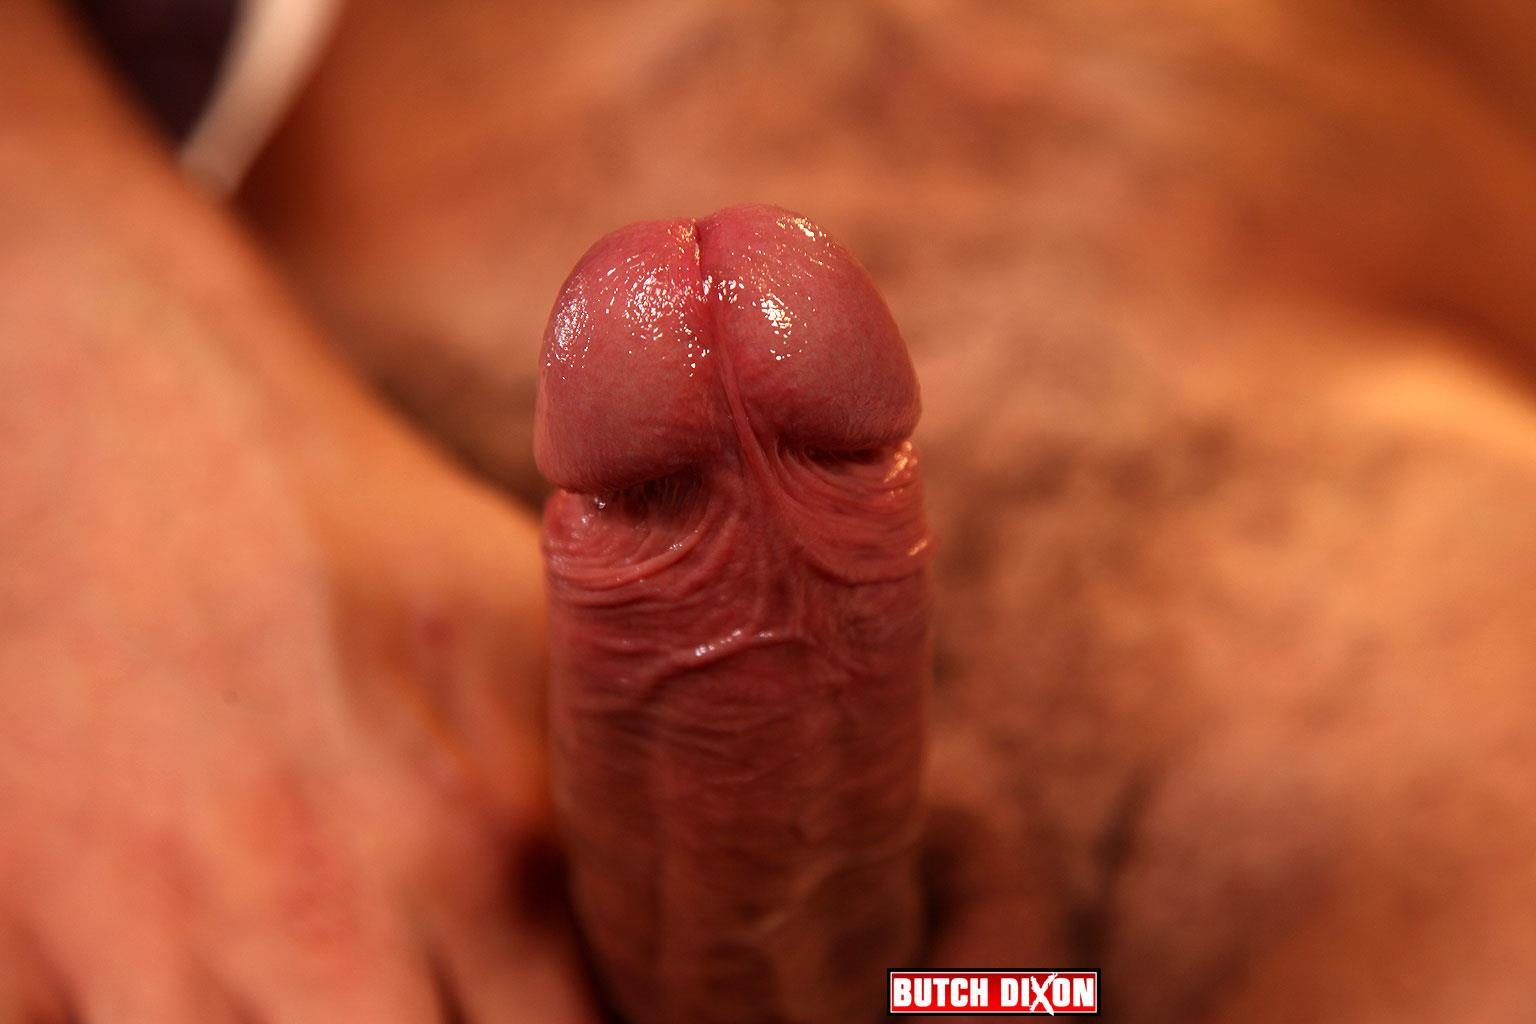 Butch Dixon Delta Kobra Muscle Hunk With A Big Uncut Cock Jerking Off Amateur Gay Porn 17 Amateur Muscle Hunk Delta Kobra Jerks His Big Thick Uncut Cock